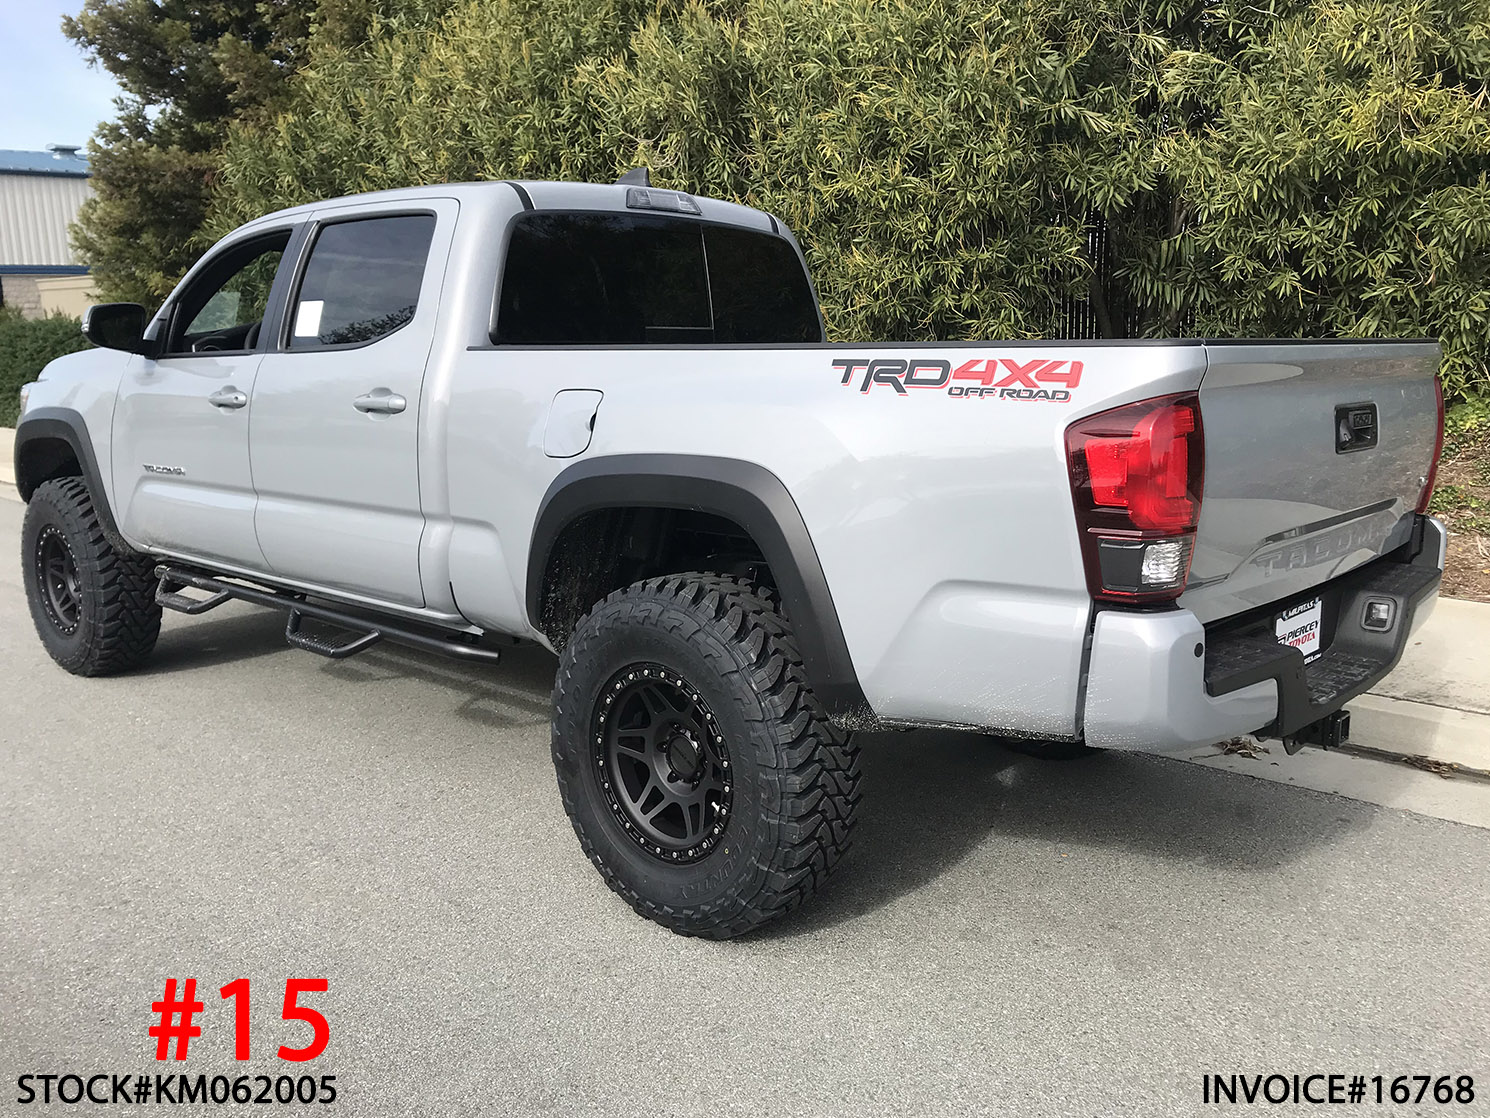 Jeep Wrangler For Sale In Sc >> 2019 TOYOTA TACOMA CREW CAB #KM062005 | Truck and SUV Parts Warehouse